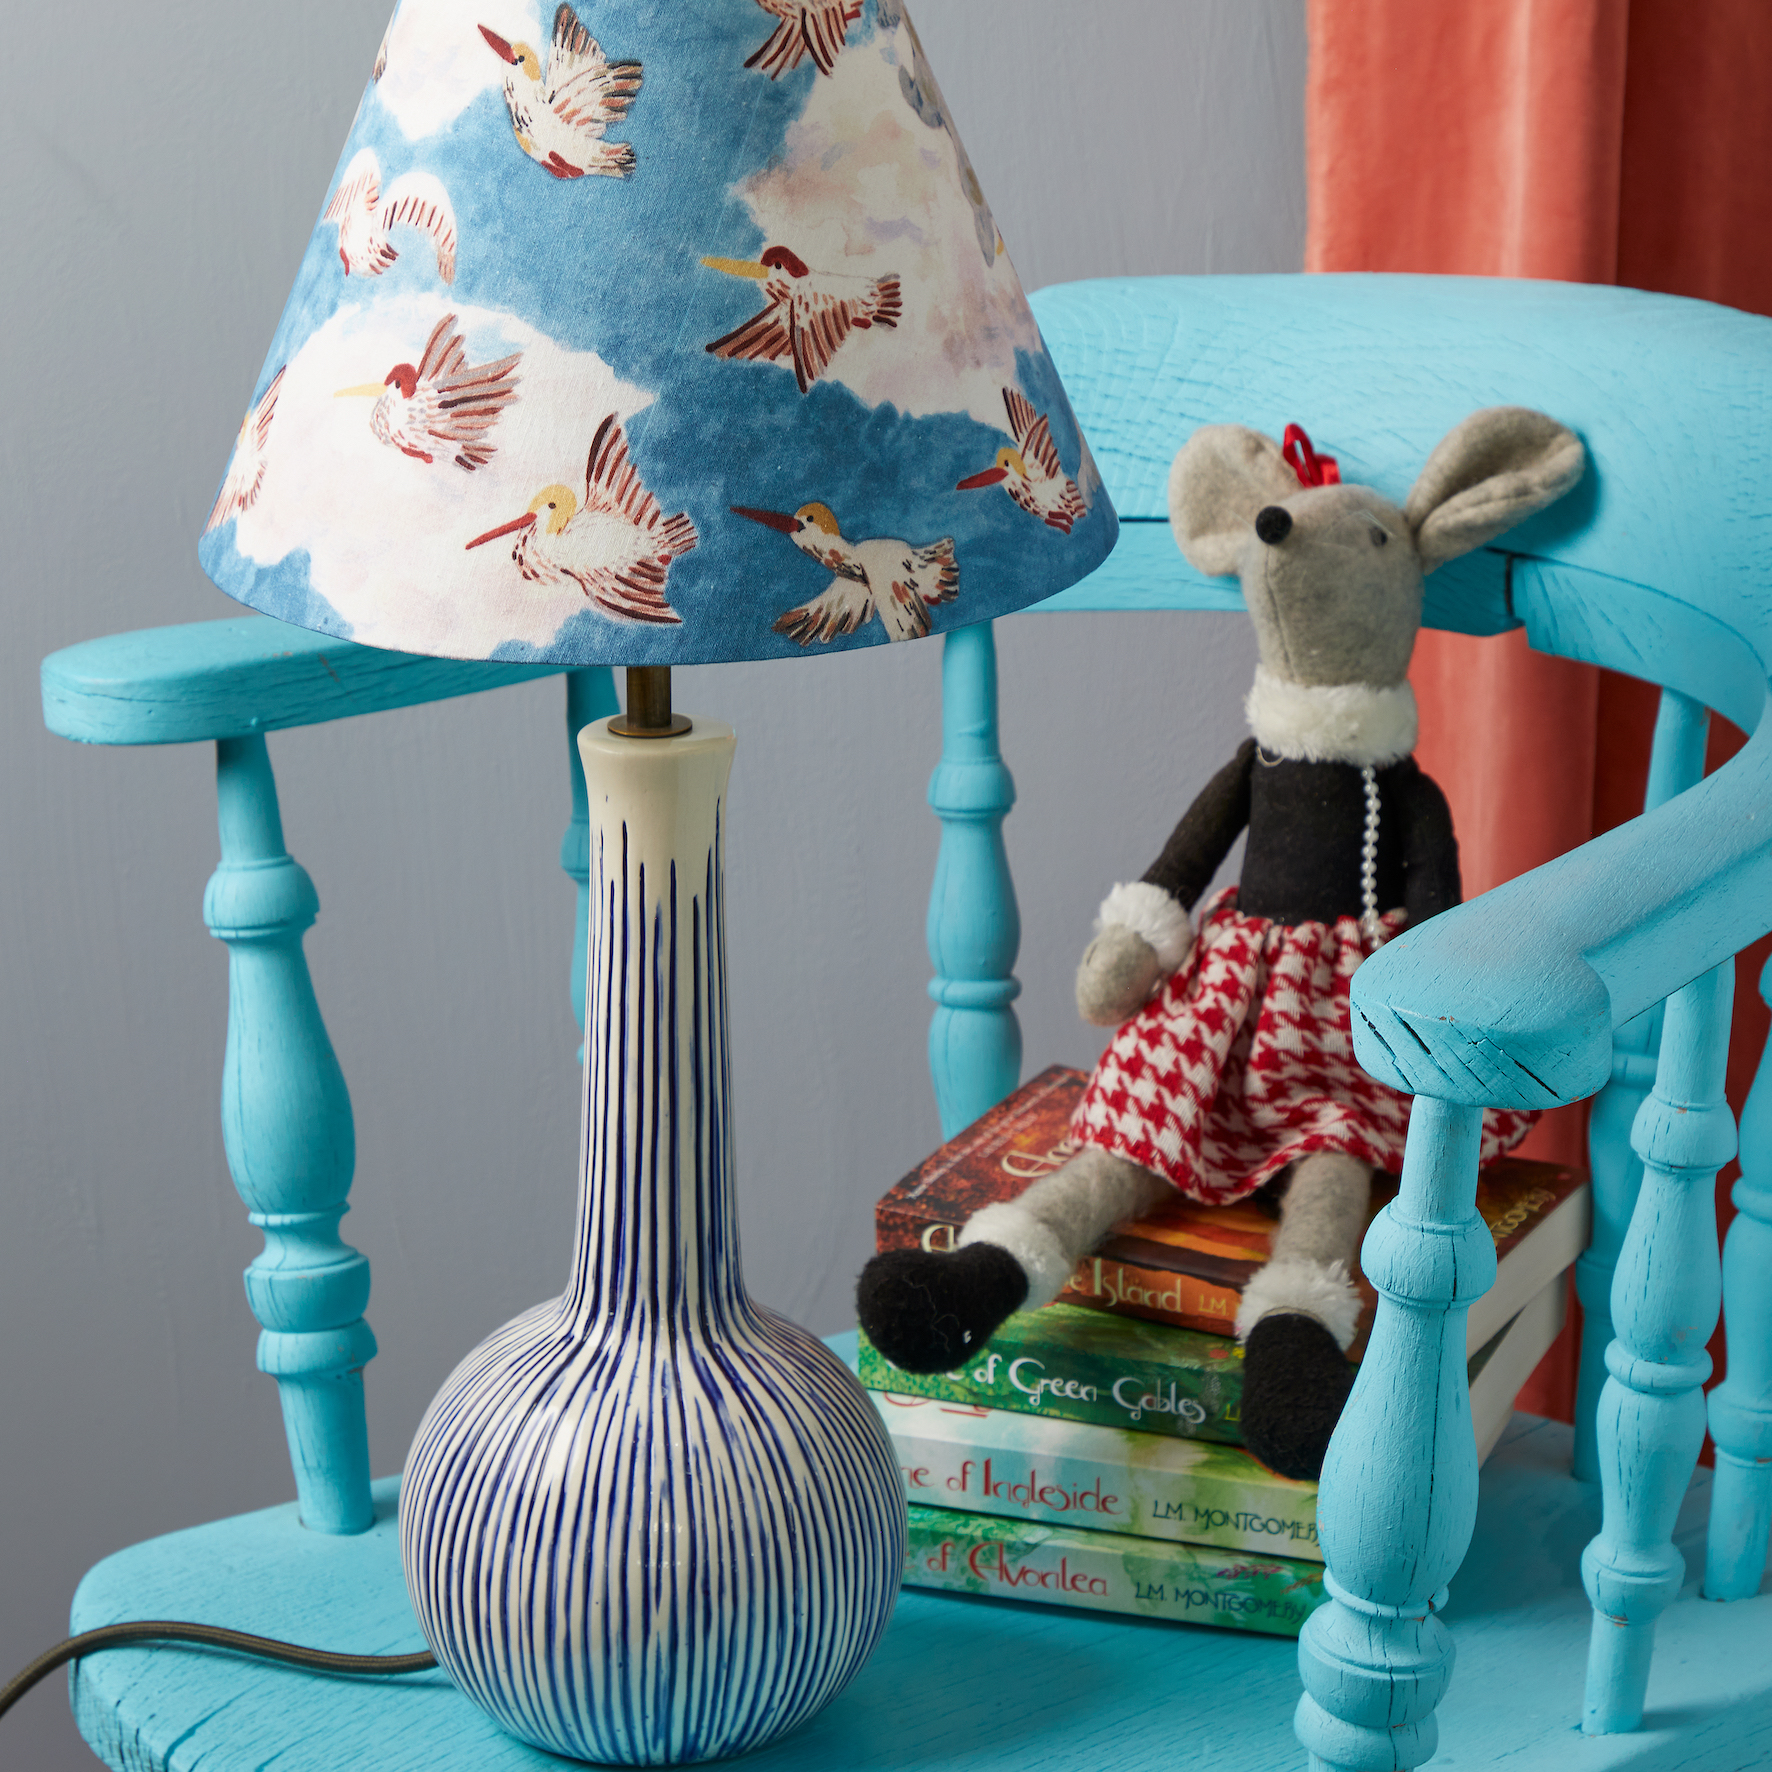 Pooky x Maude Smith Children's lampshades